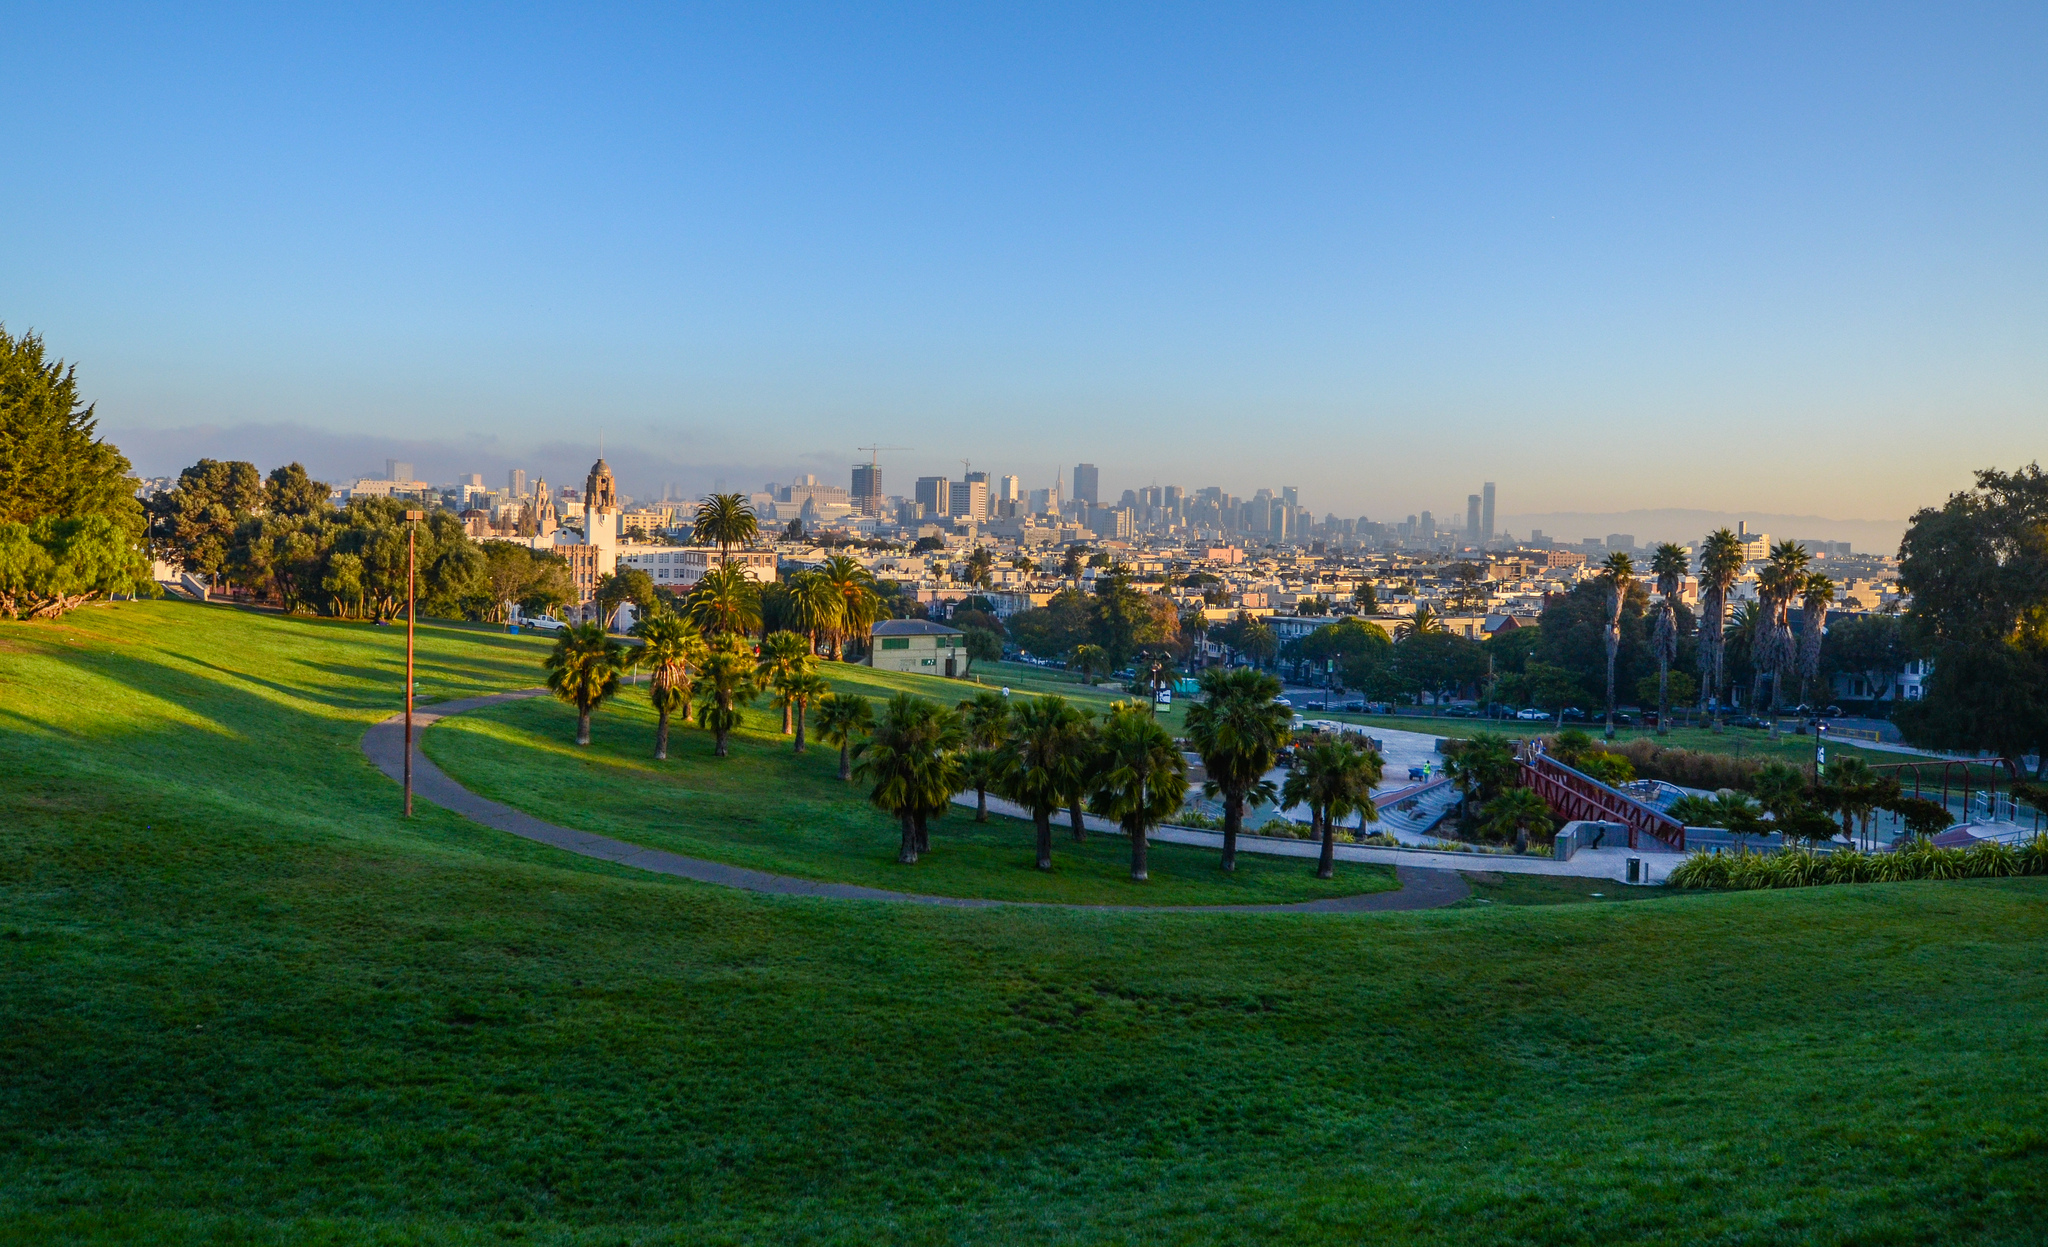 """Dolores Park, 8:00 AM"" by Markus Spiering via Flickr Creative Commons"